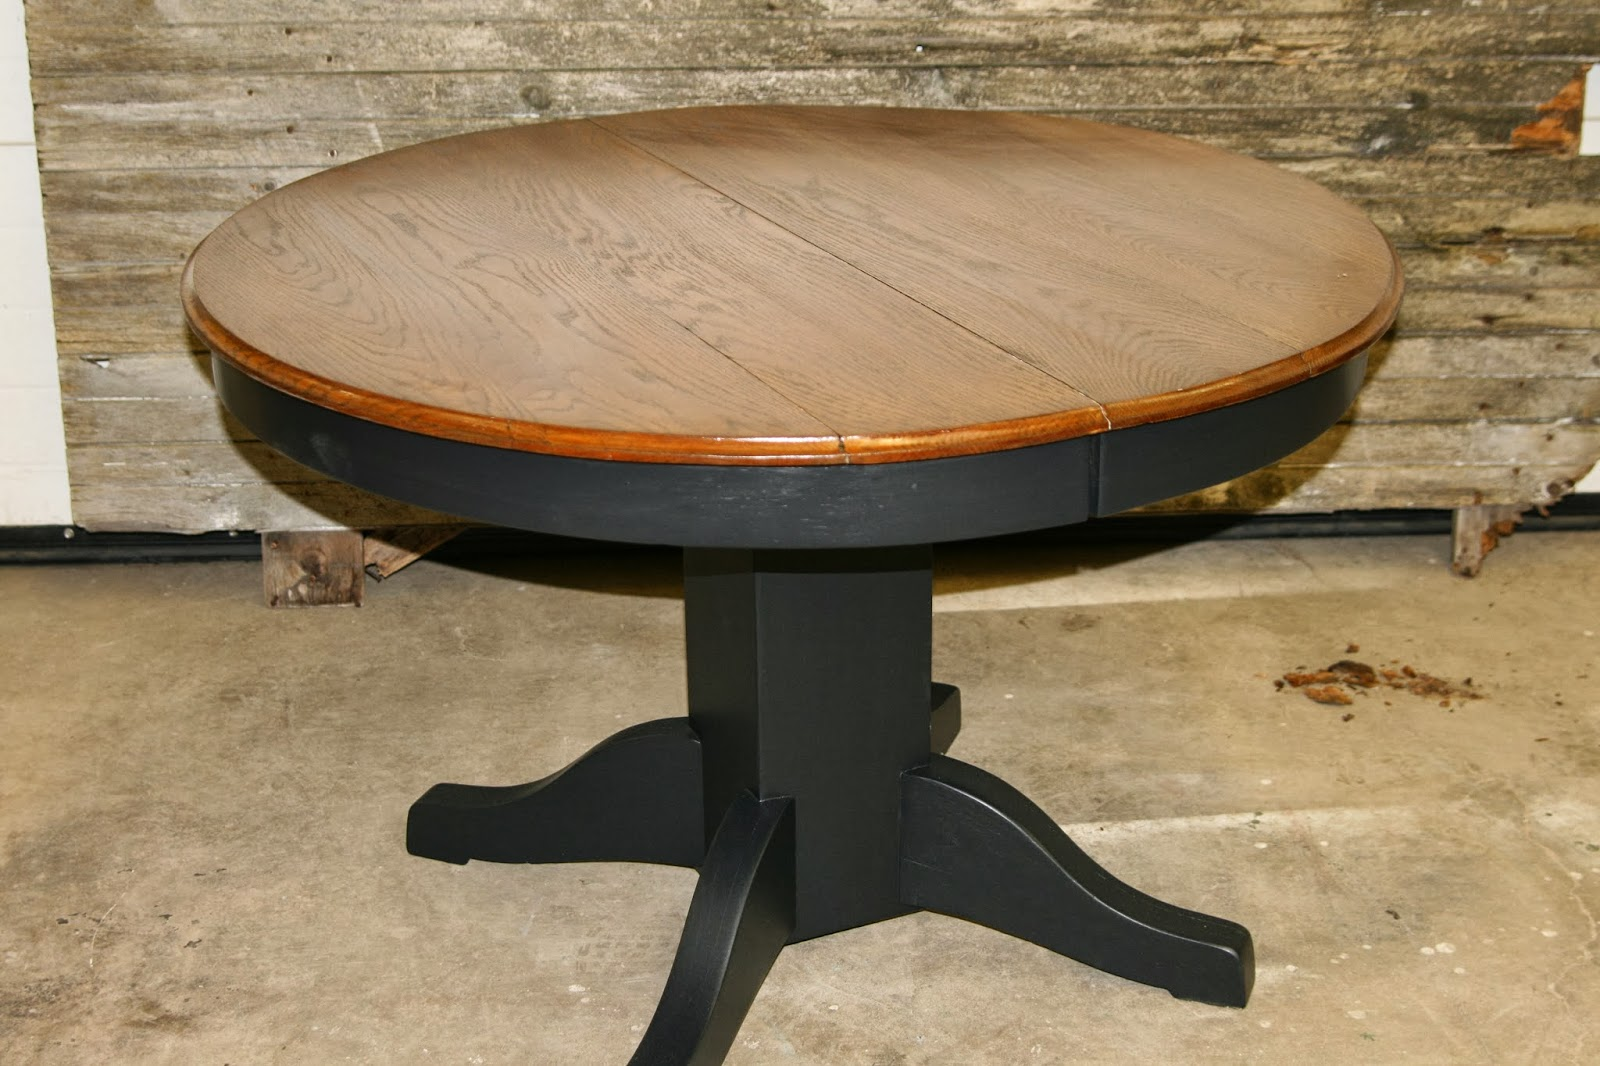 Laurel S Attic Black Pedestal Table With Stained Top Sold